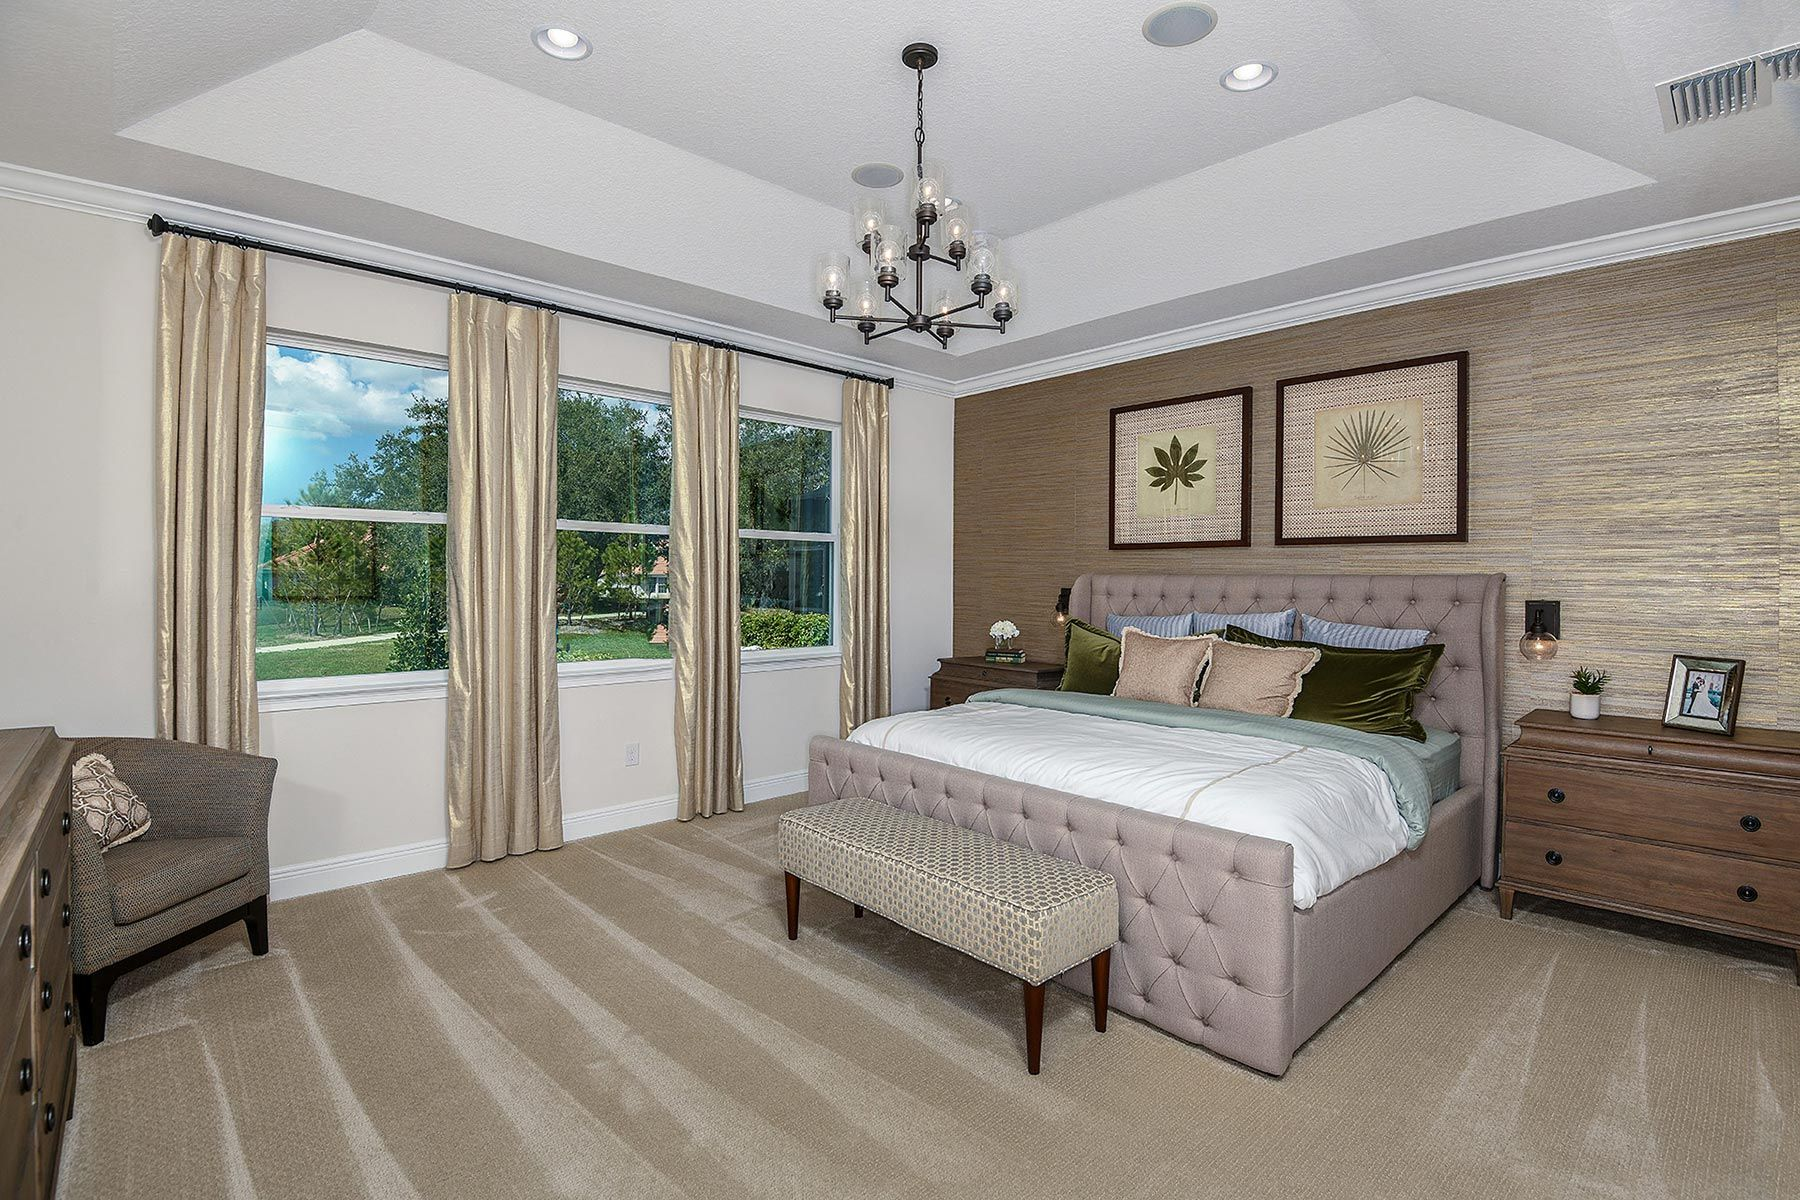 Bedroom featured in the Sunlit By Mattamy Homes in Sarasota-Bradenton, FL